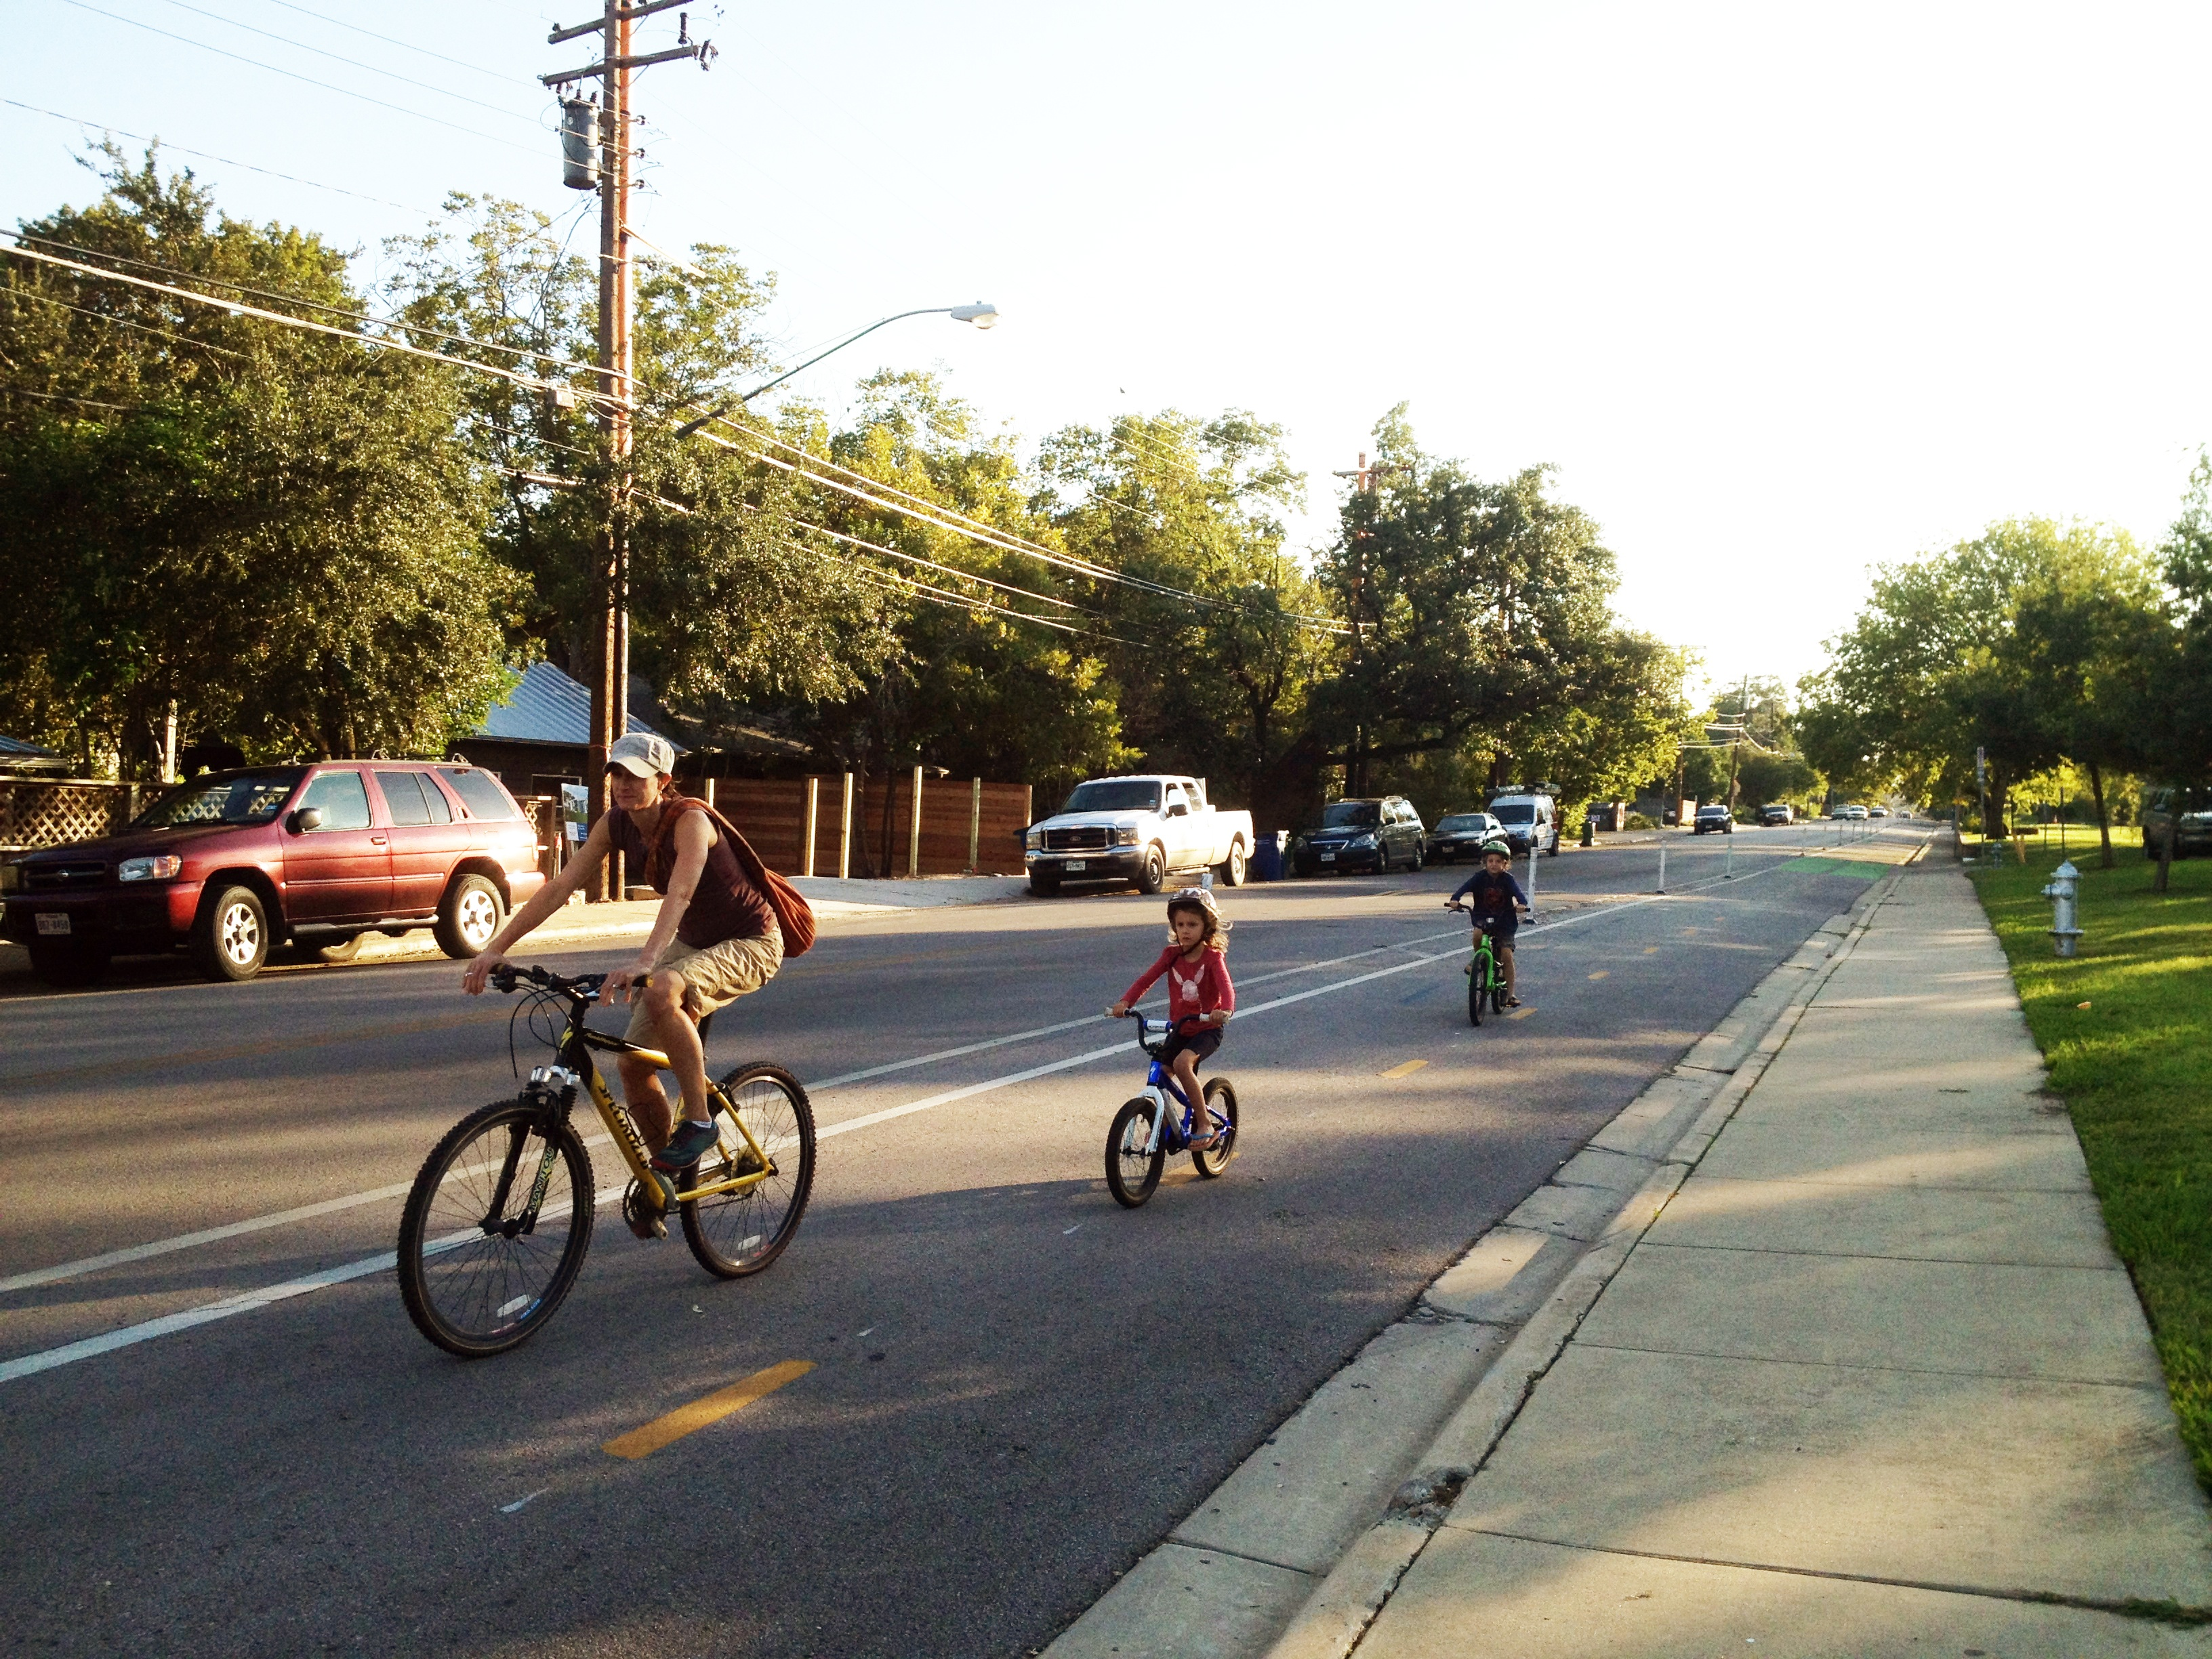 cycling-in-austin-on-sunday-morning.jpg